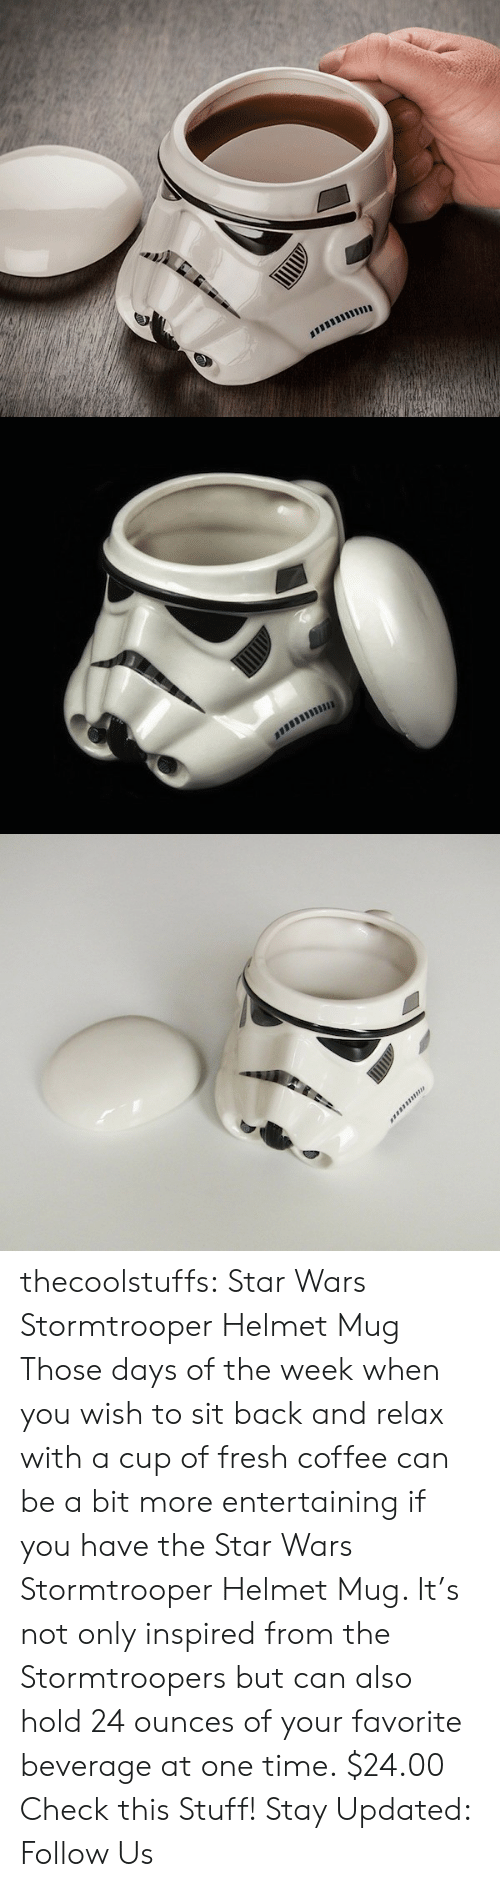 Amazon, Fresh, and Star Wars: thecoolstuffs:  Star Wars Stormtrooper Helmet Mug  Those days of the week when you wish to sit back and relax with a cup of fresh coffee can be a bit more entertaining if you have the Star Wars Stormtrooper Helmet Mug. It's not only inspired from the Stormtroopers but can also hold 24 ounces of your favorite beverage at one time.  $24.00   Check this Stuff!   Stay Updated: Follow Us